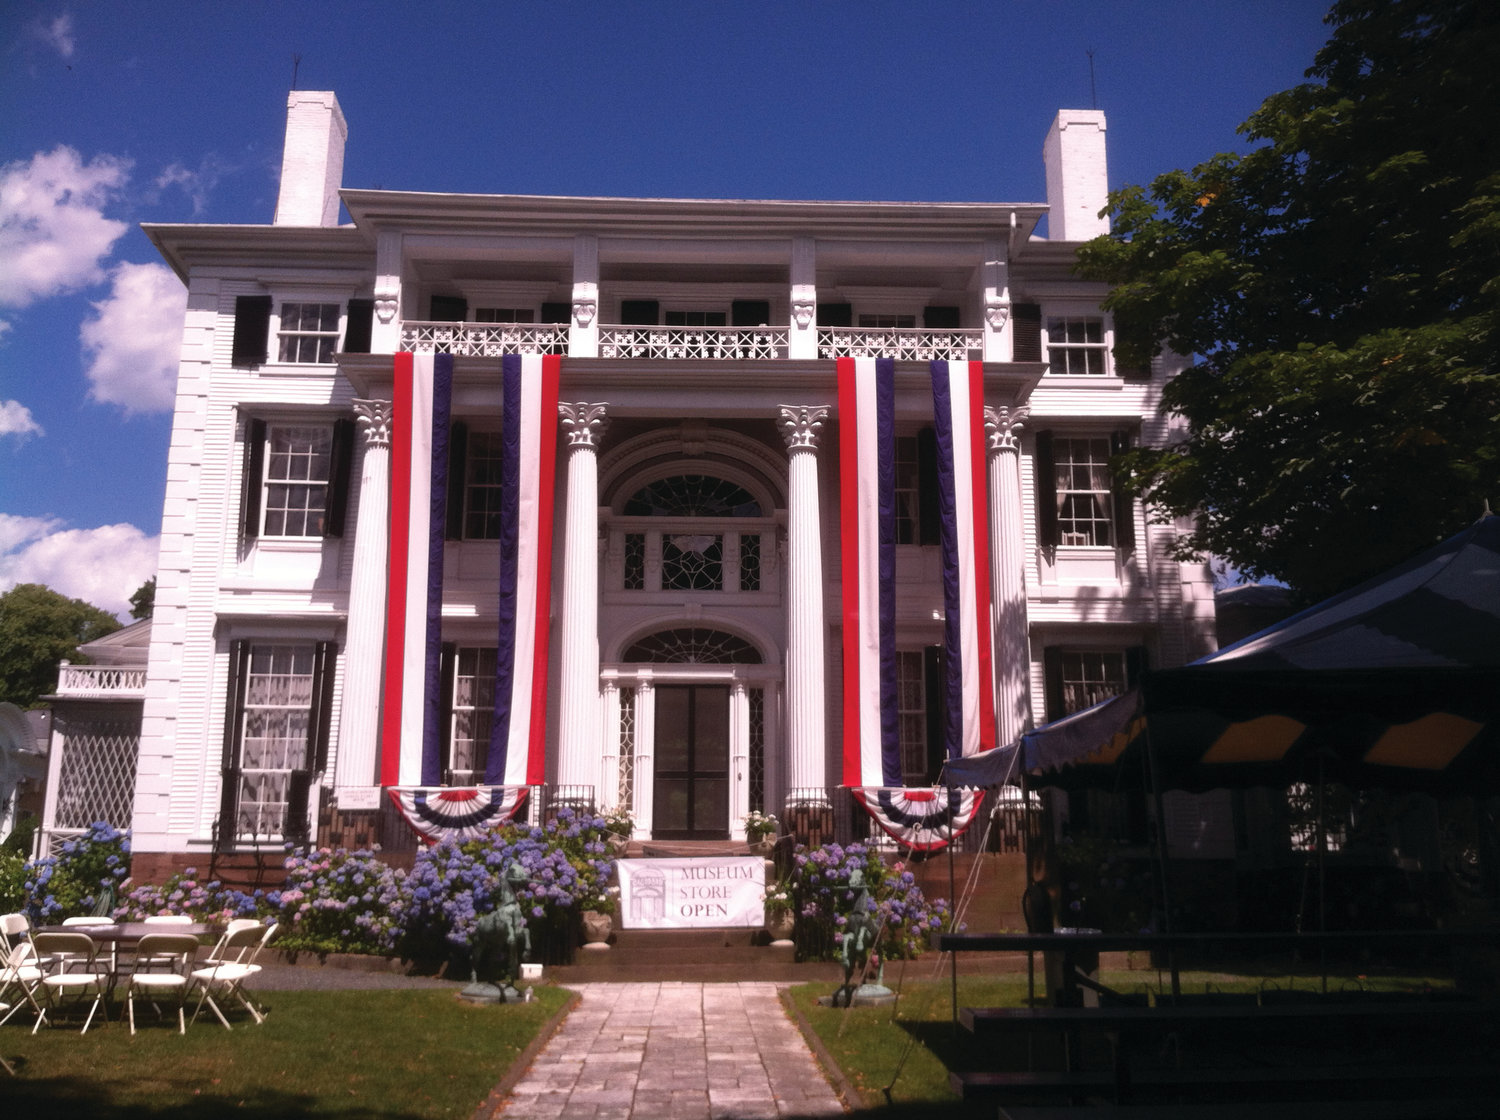 Fourth of July picnic at Linden Place